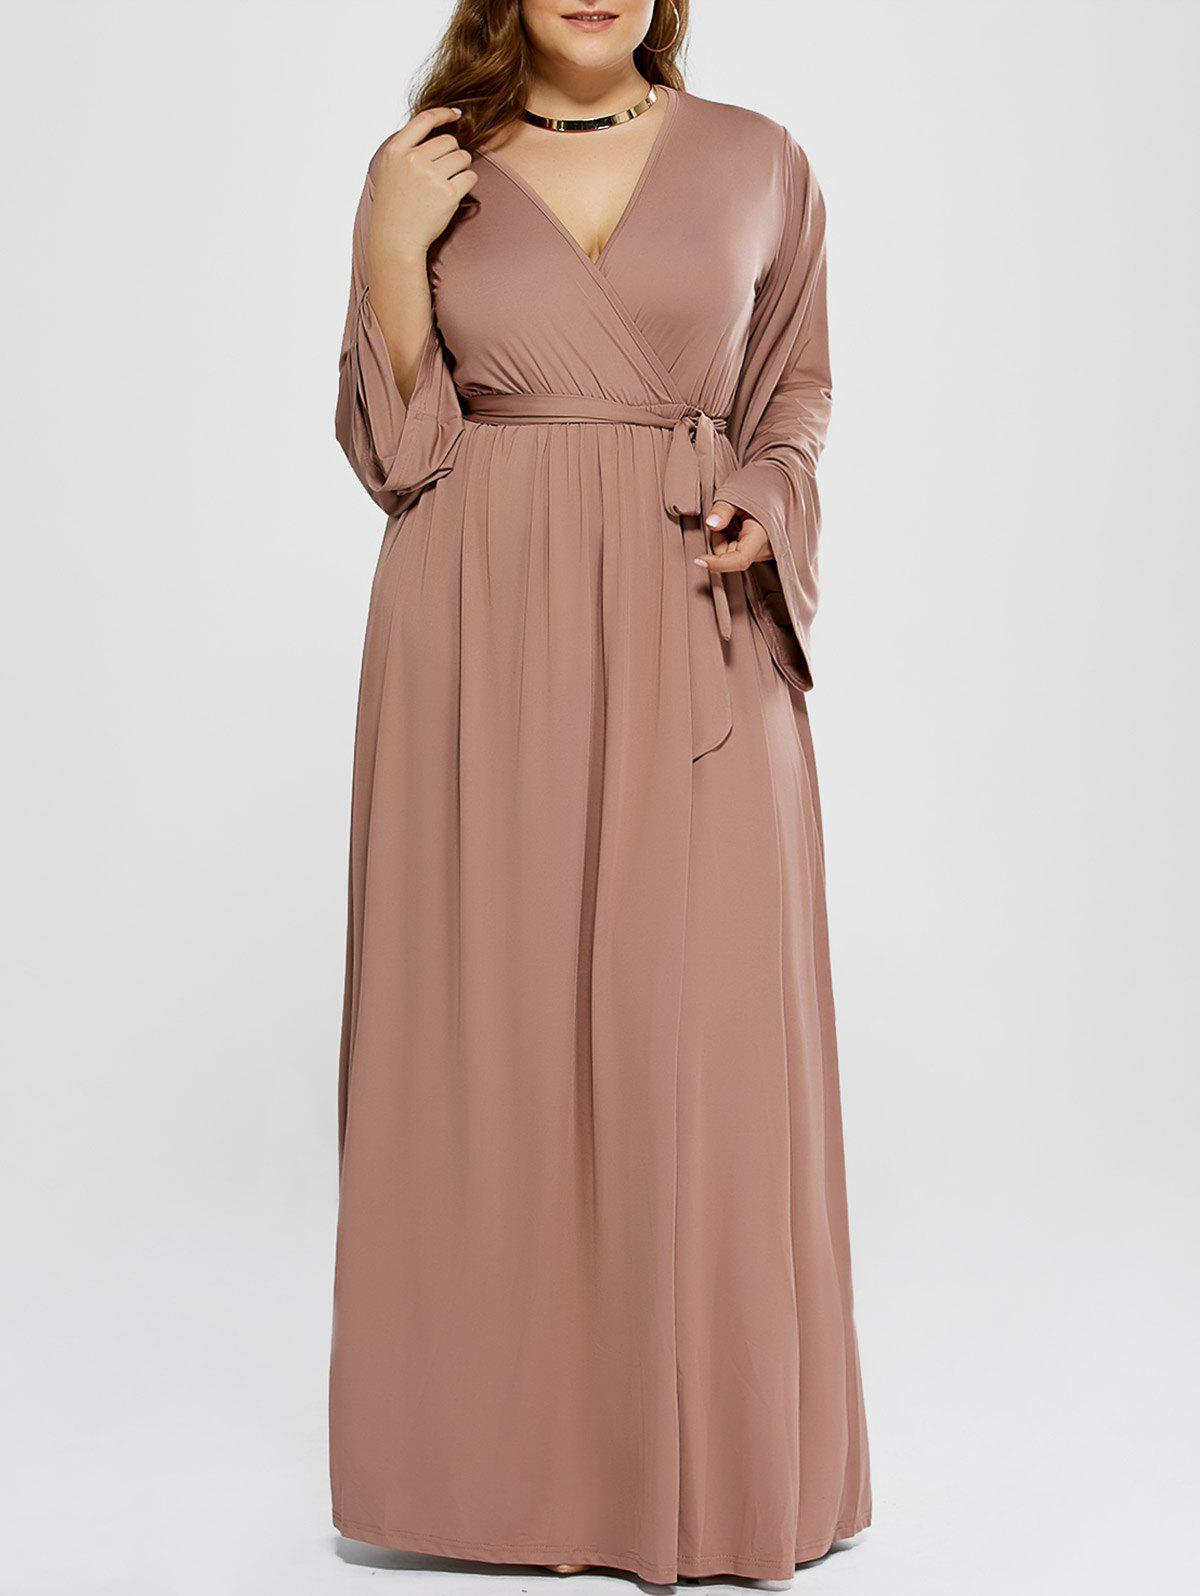 2018 Plus Size Long Sleeve Modest Maxi Formal Dress Khaki Xl In